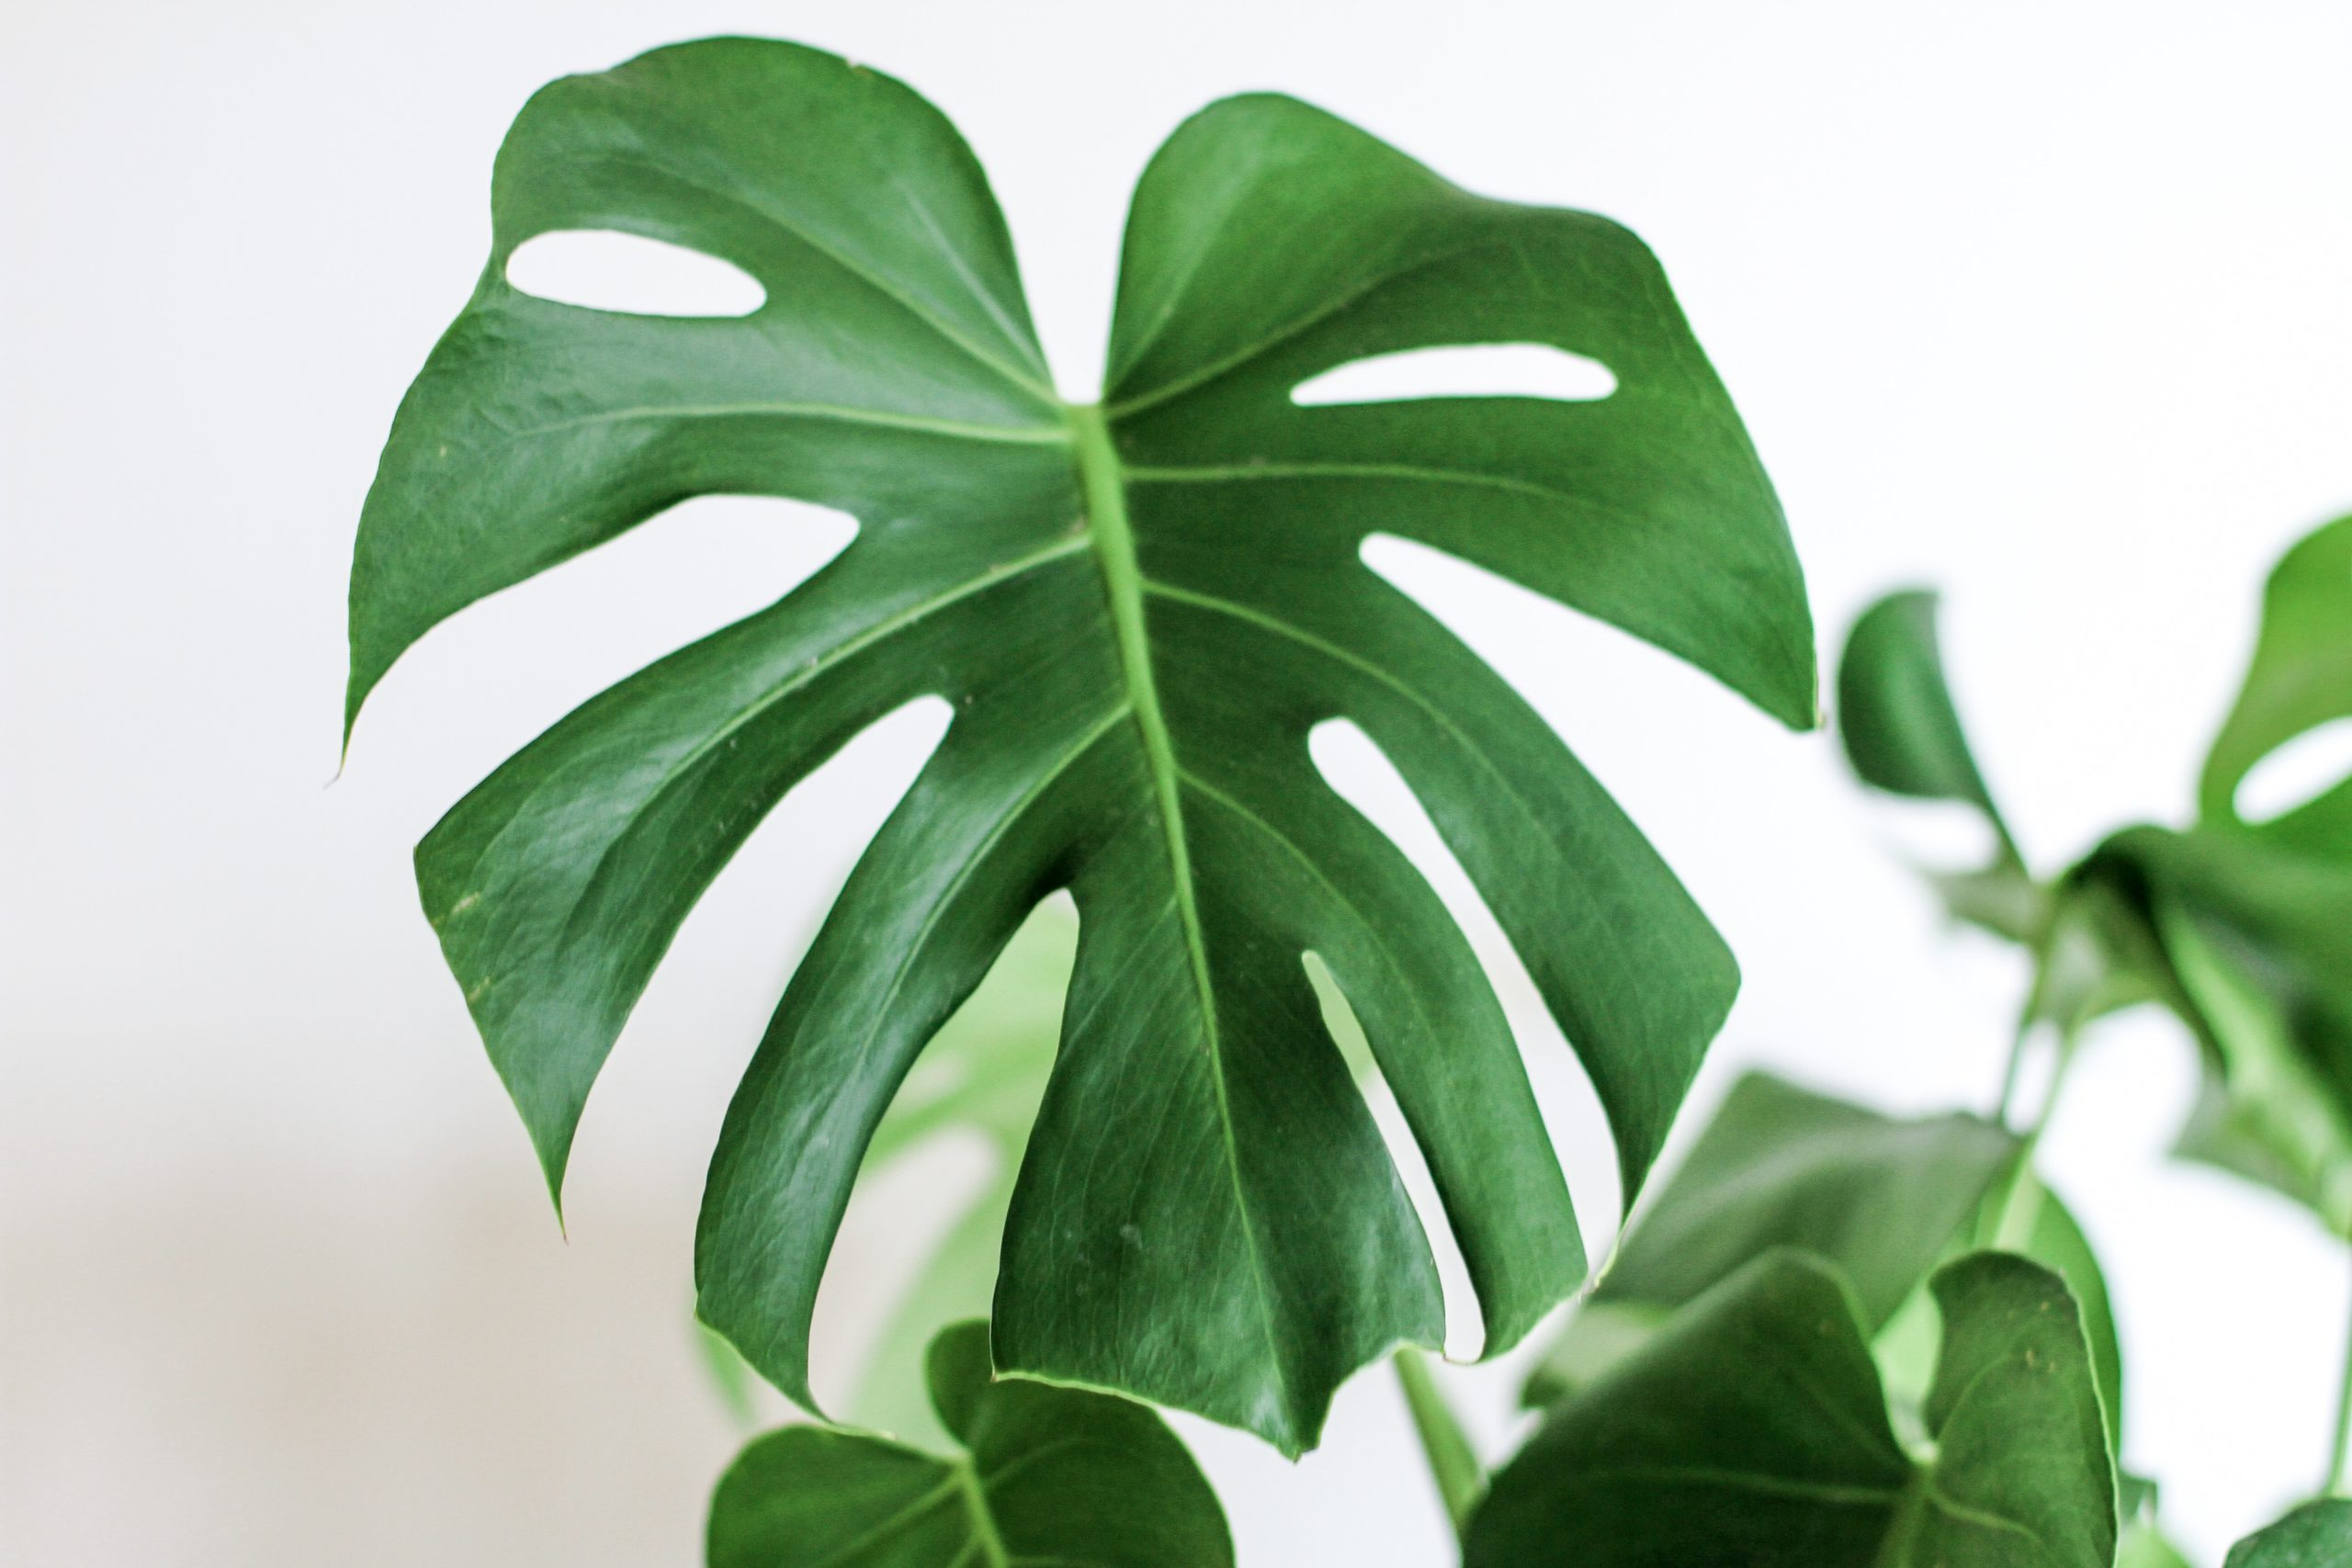 Photo of a monstera plant leaf to represent at-home sustainability